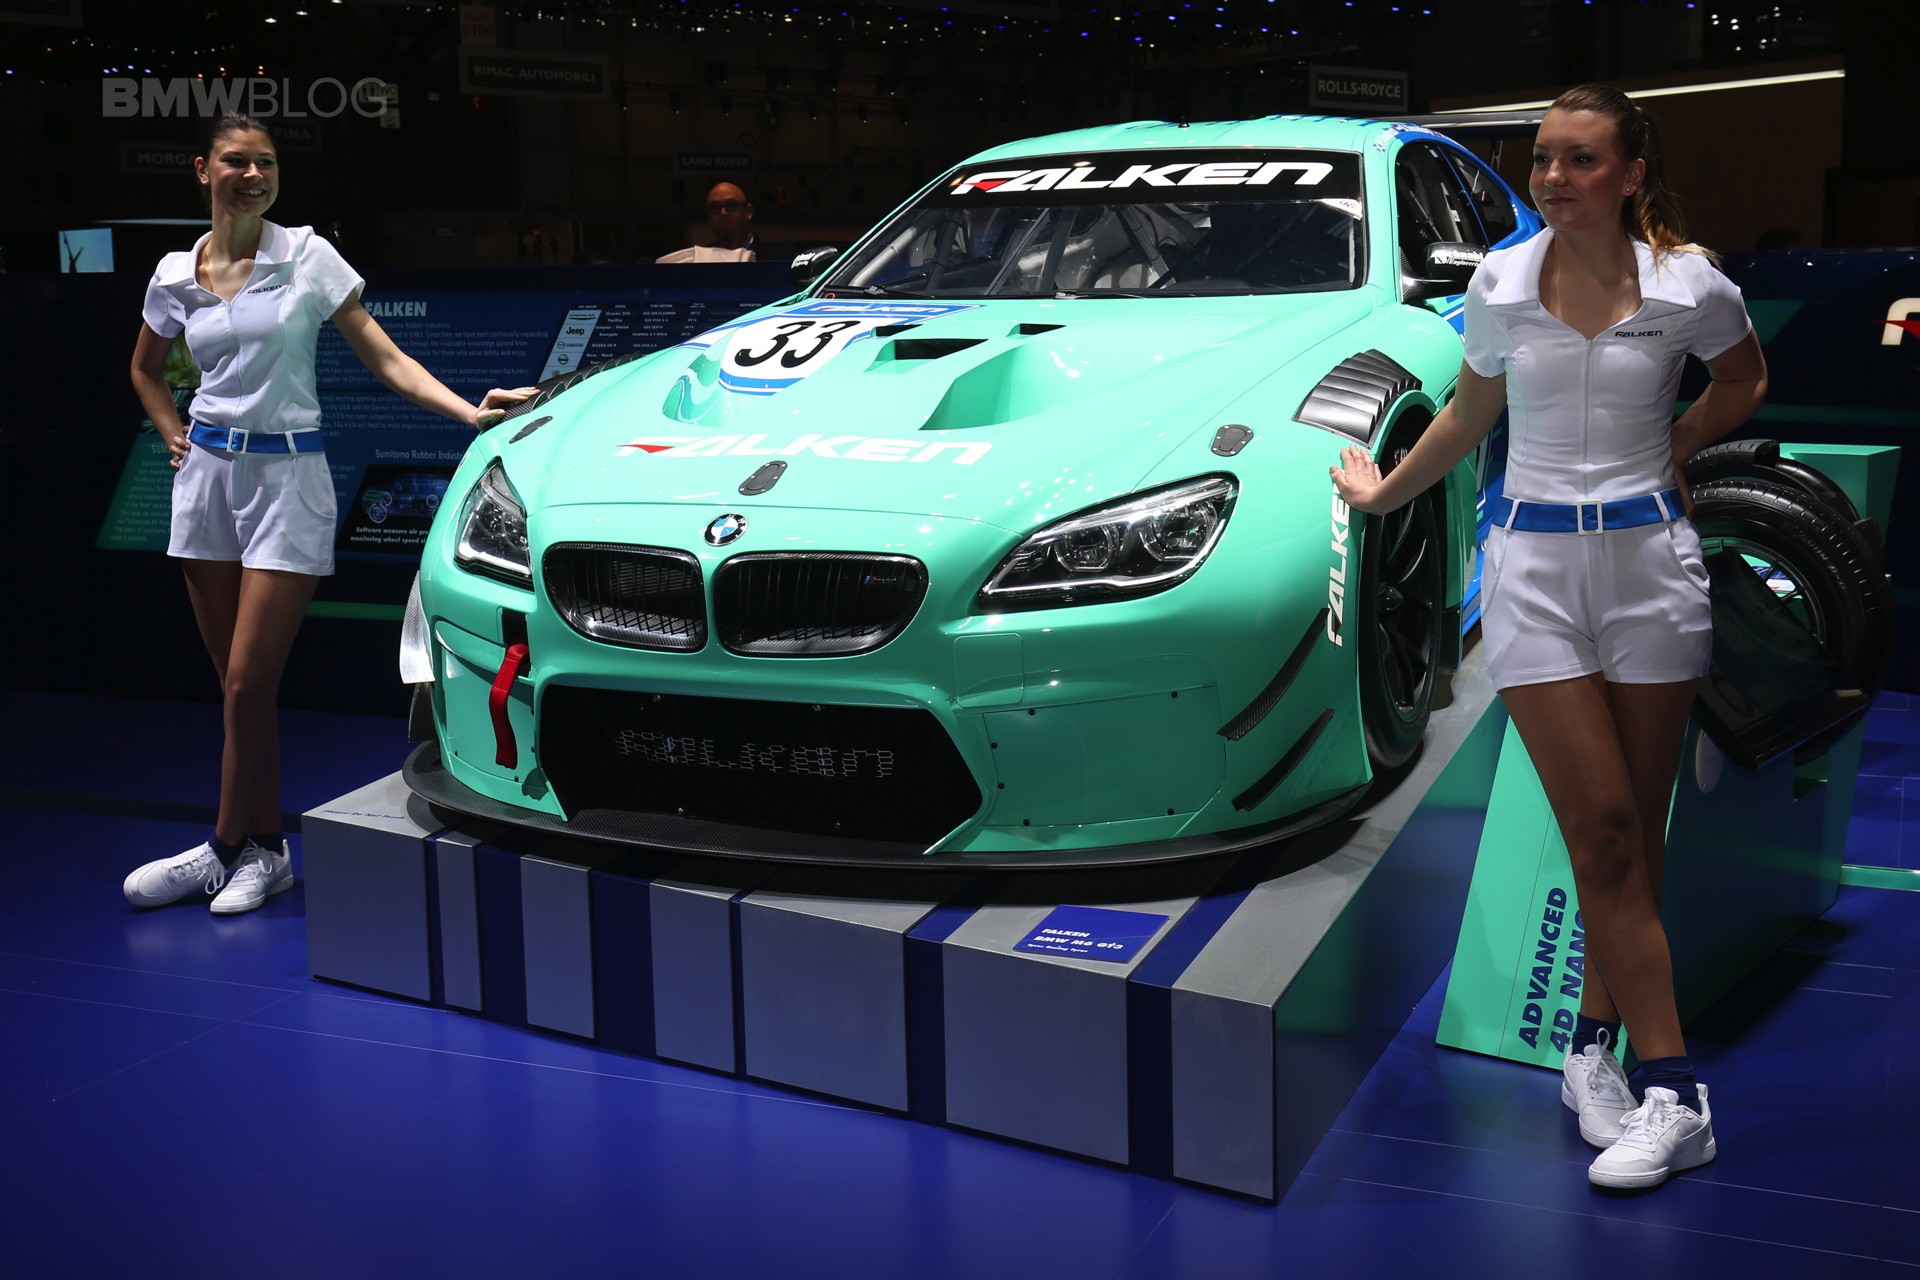 Falken New Bmw M6 Gt3 Race Car